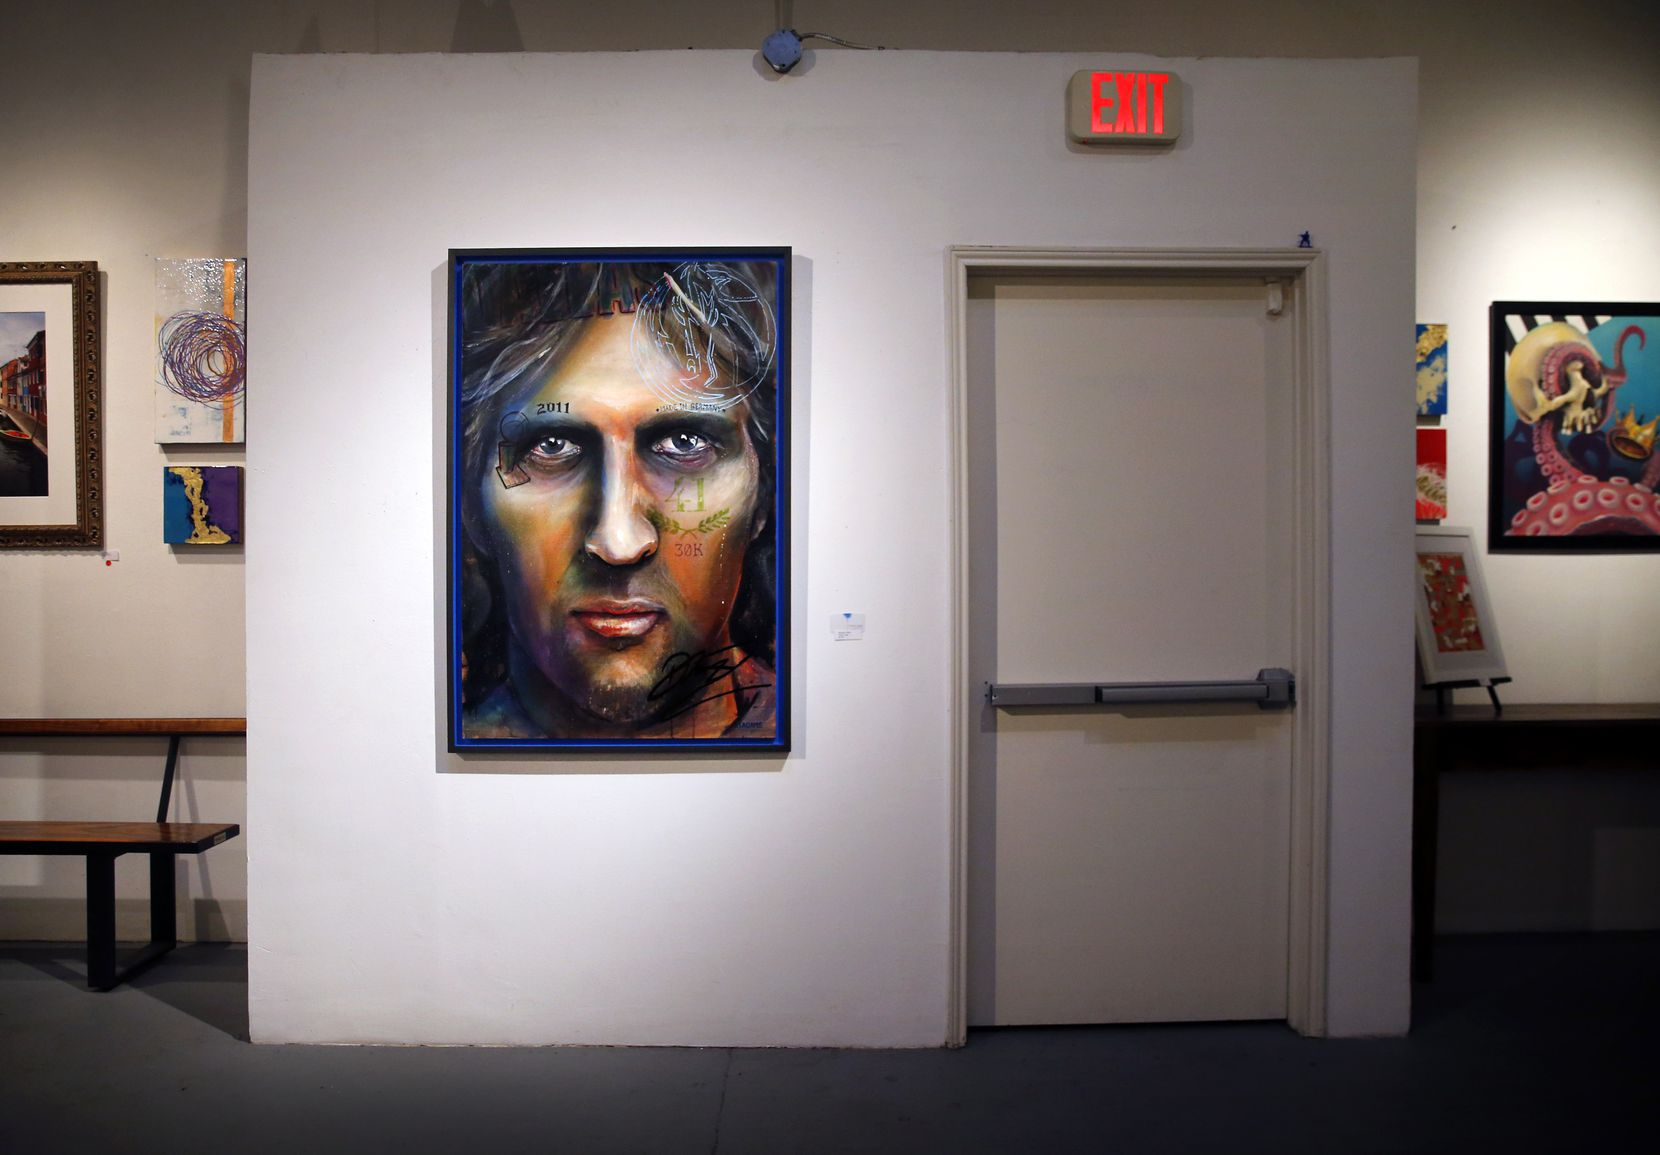 As the All-Star nears retirement after 21 seasons in the NBA, Dirk Nowitzki is featured in a painting titled Need A Light by artist Brandon Adams. It was hanging next to an exit at the Kettle Art Gallery in Dallas on March 29, 2019.